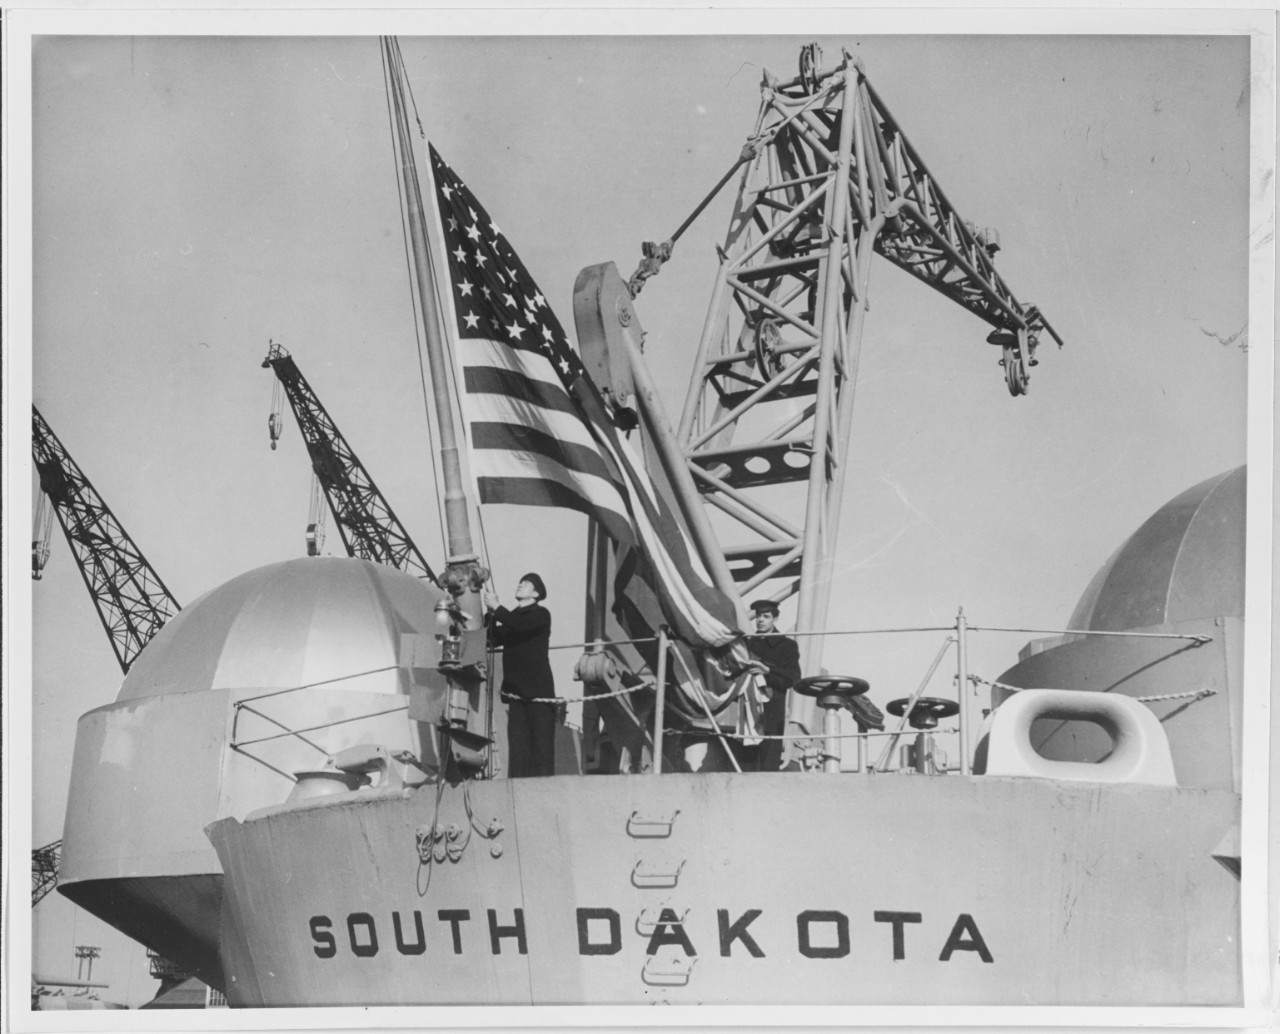 Sailors haul down the colors as South Dakota decommissions at Philadelphia Naval Shipyard, Pa., on 31 January 1947. (U.S. Navy Photograph NH 73929, Naval History and Heritage Command)